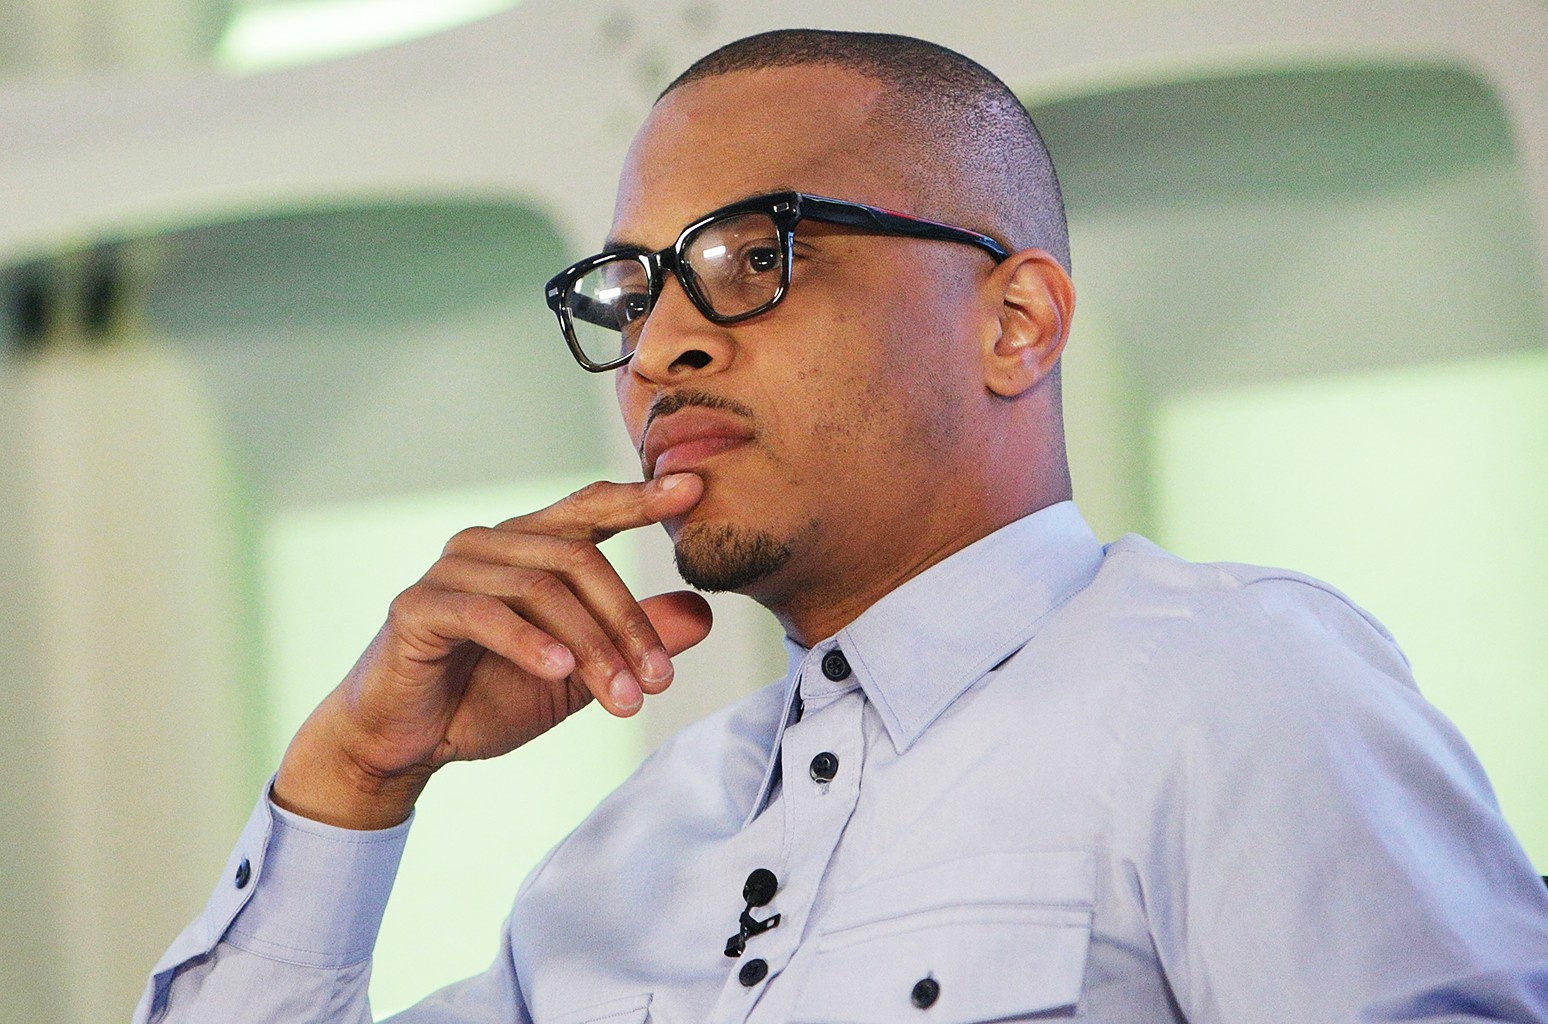 T.I. attends the BET Music Presents: Us Or Else panel discussion at the Viacom White Box Hall on April 6, 2017 in New York City.